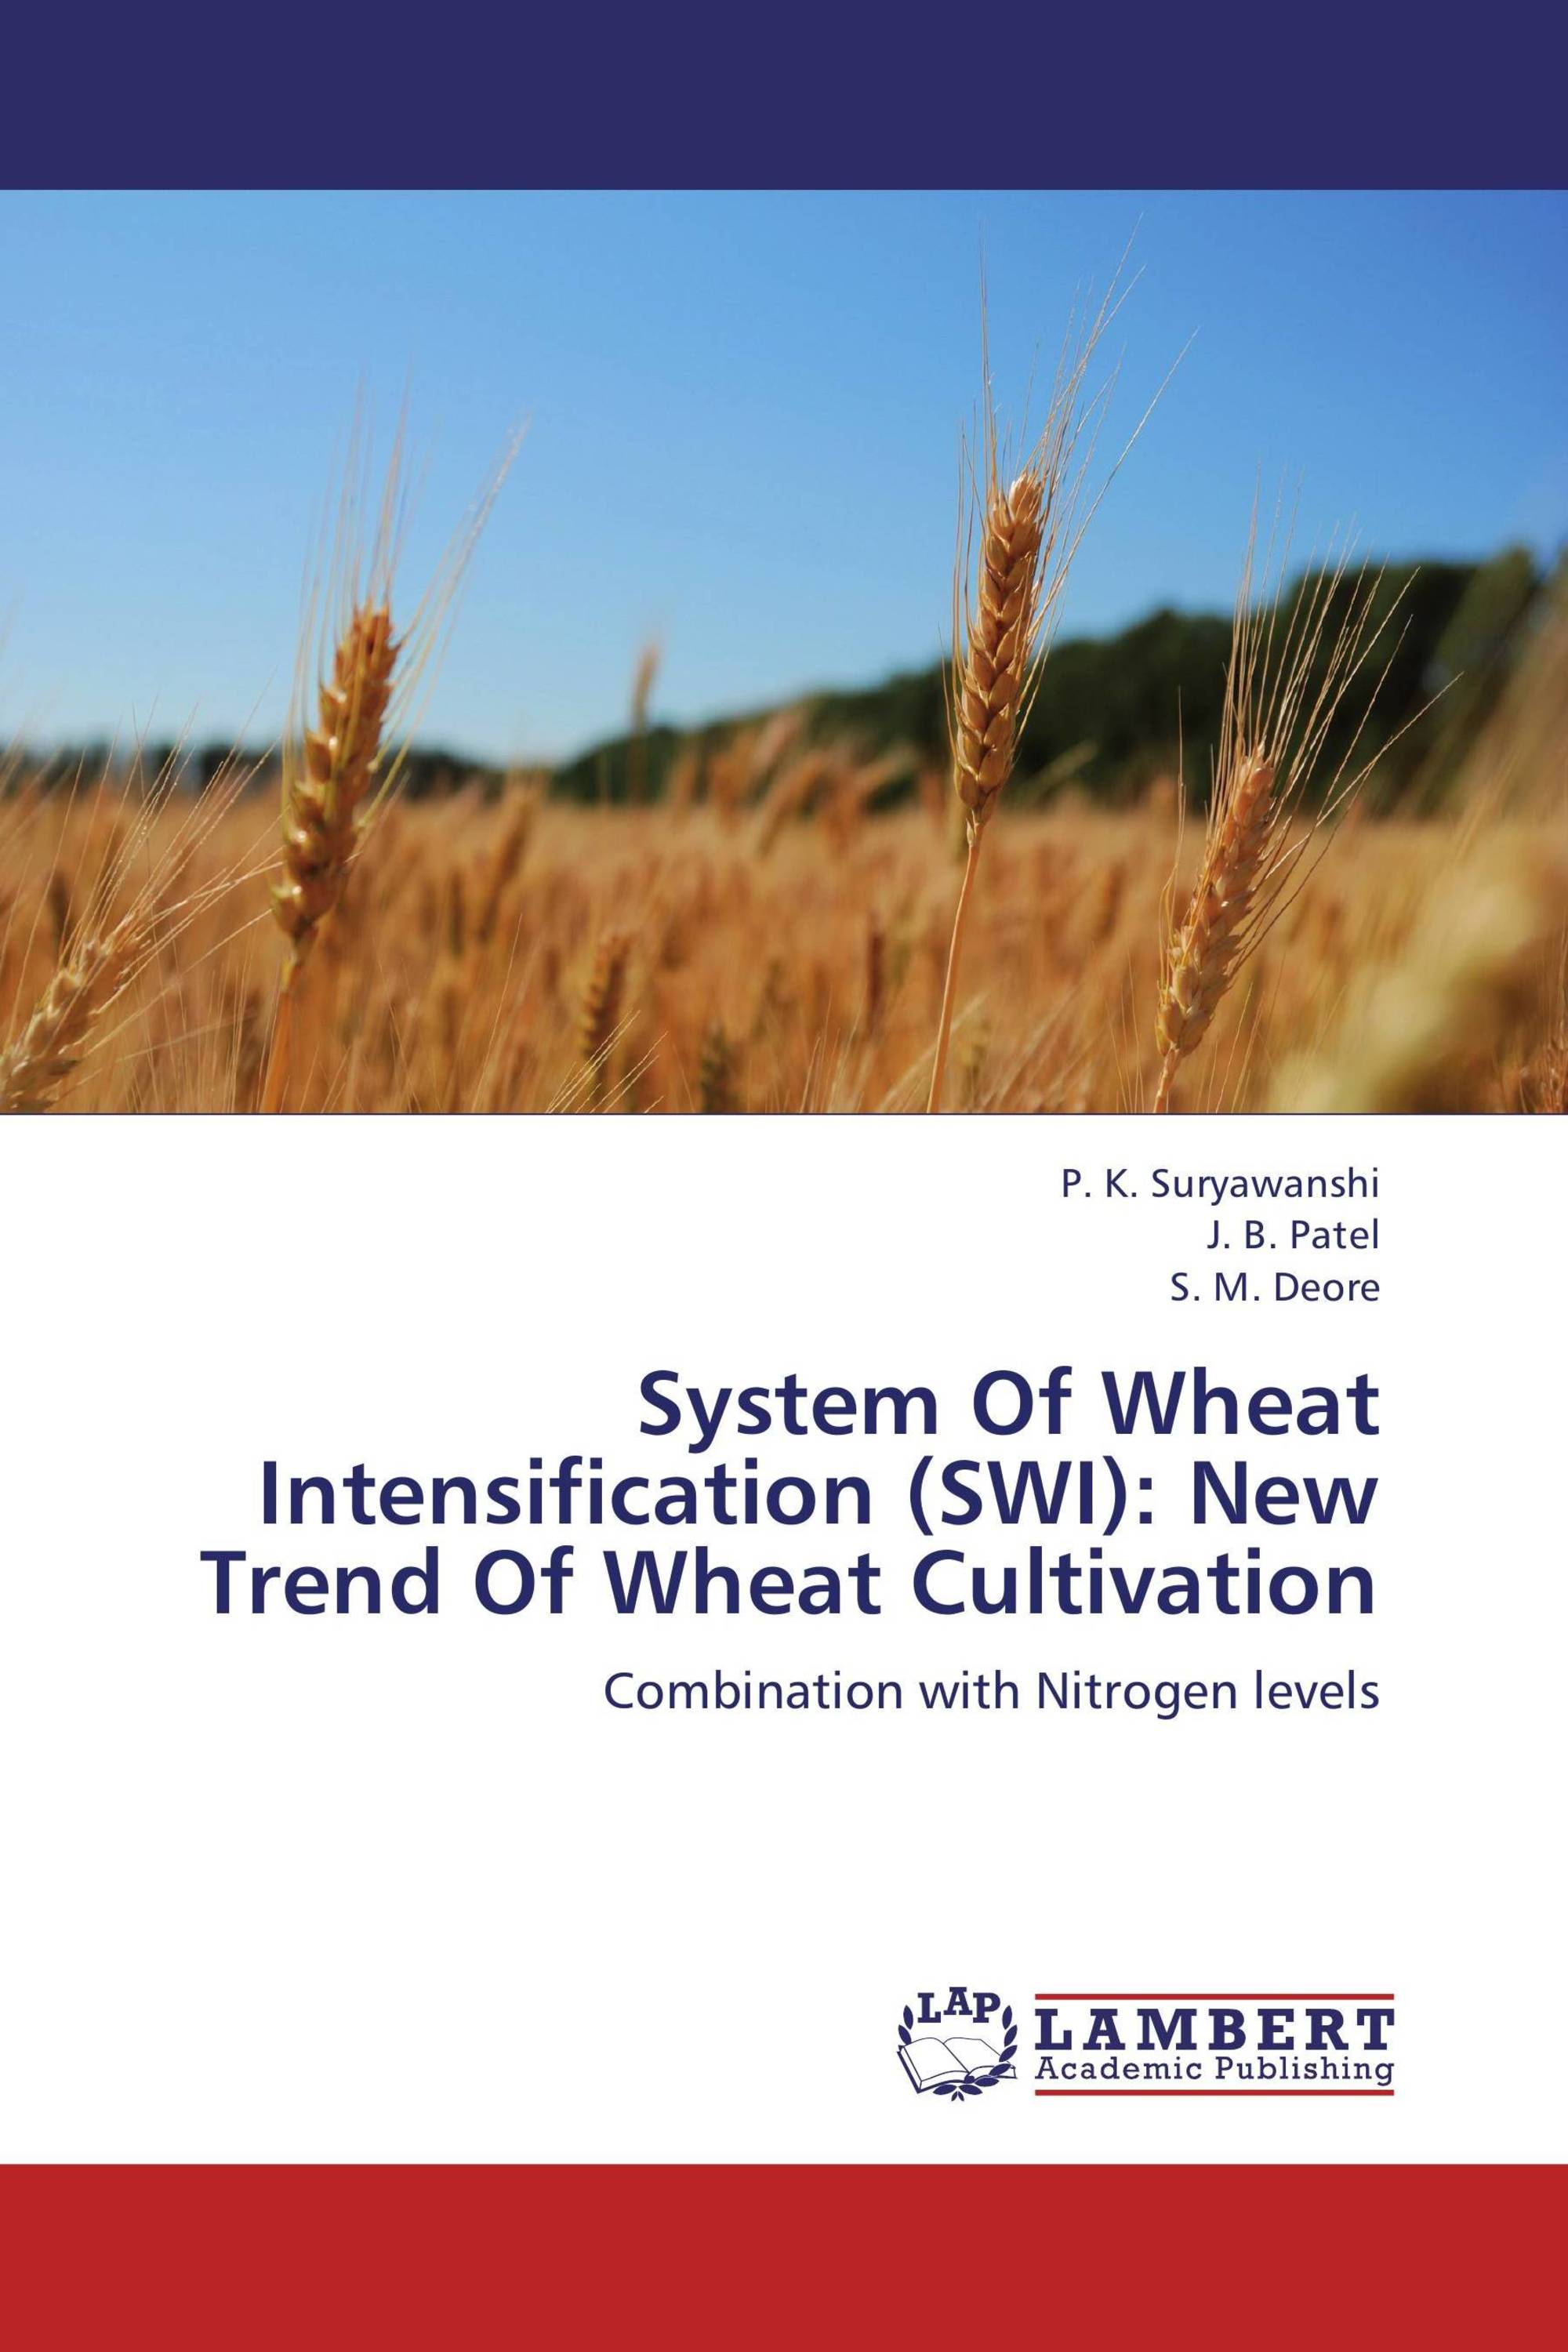 System Of Wheat Intensification (SWI): New Trend Of Wheat Cultivation